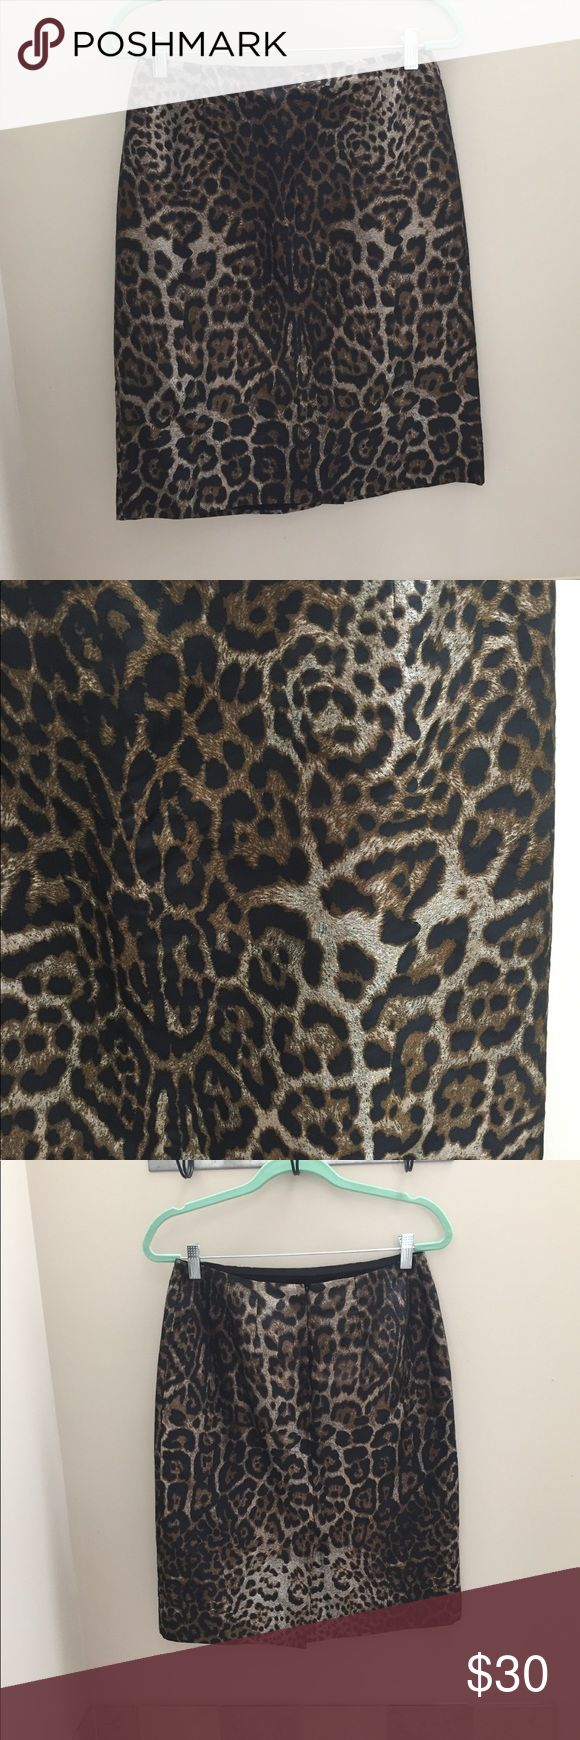 Leopard print GORGEOUS pencil skirt So pretty! Like new!! Skirts Pencil